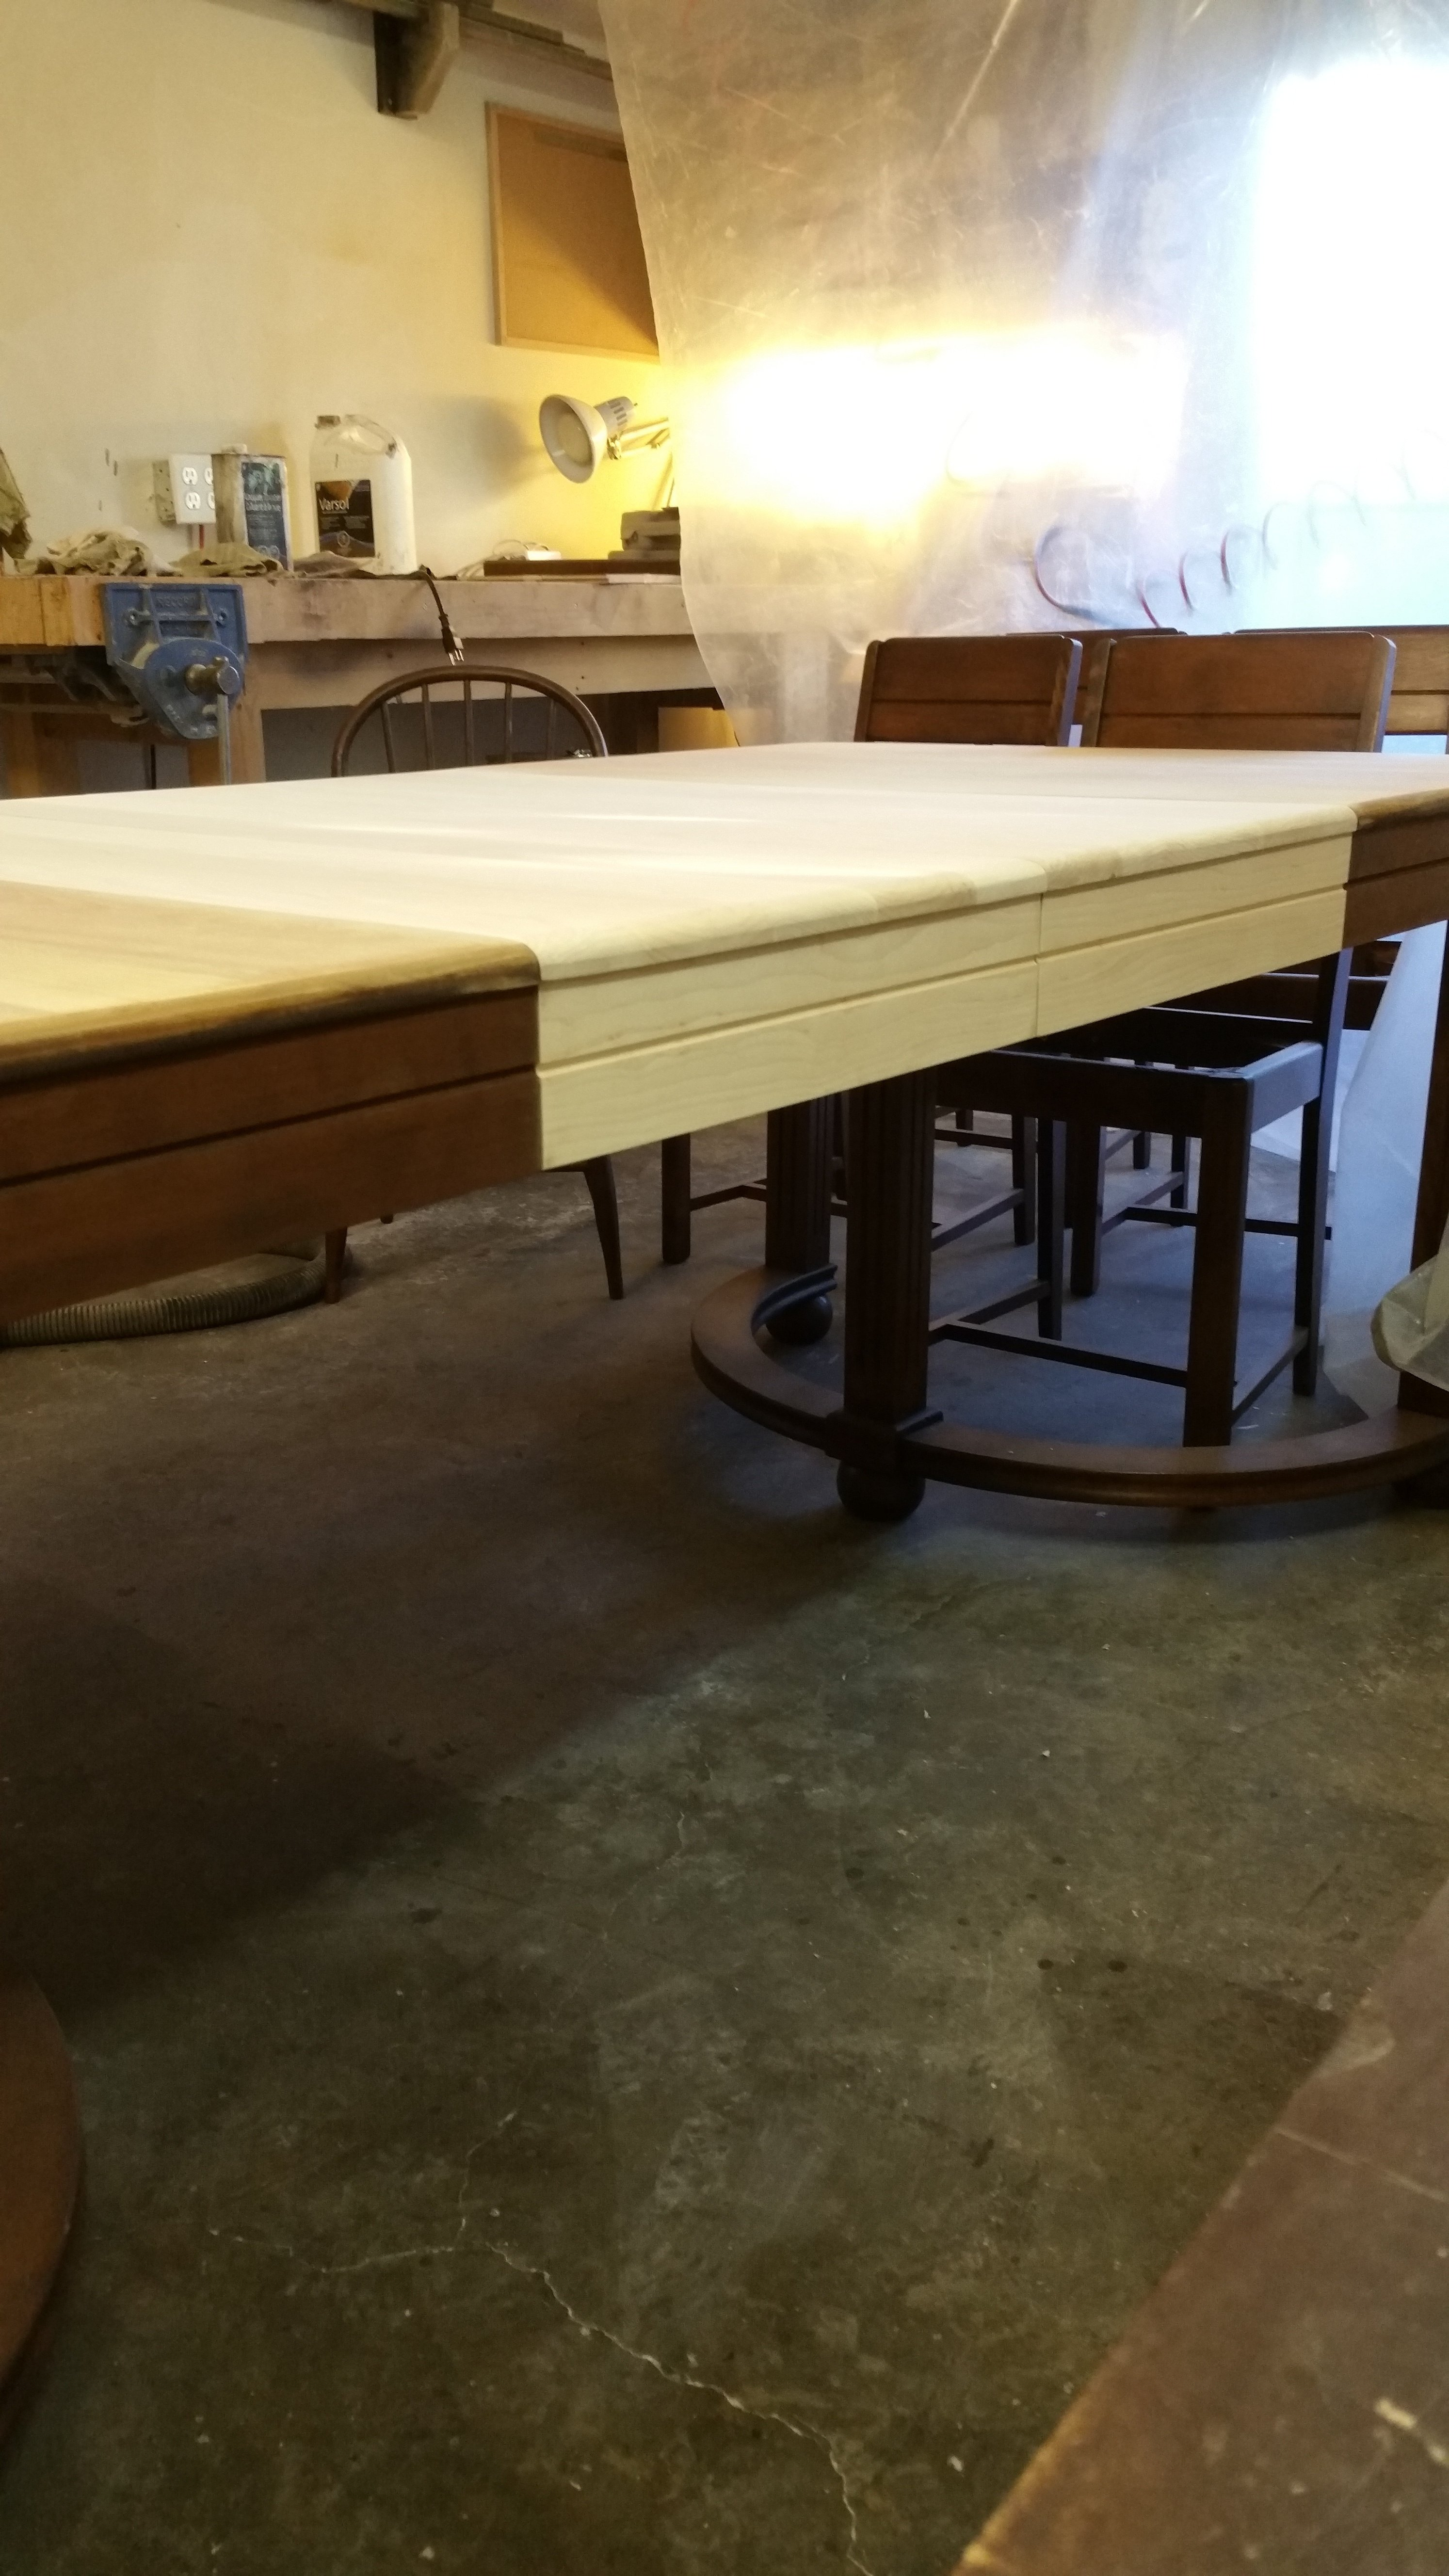 Matching table skirts with profile